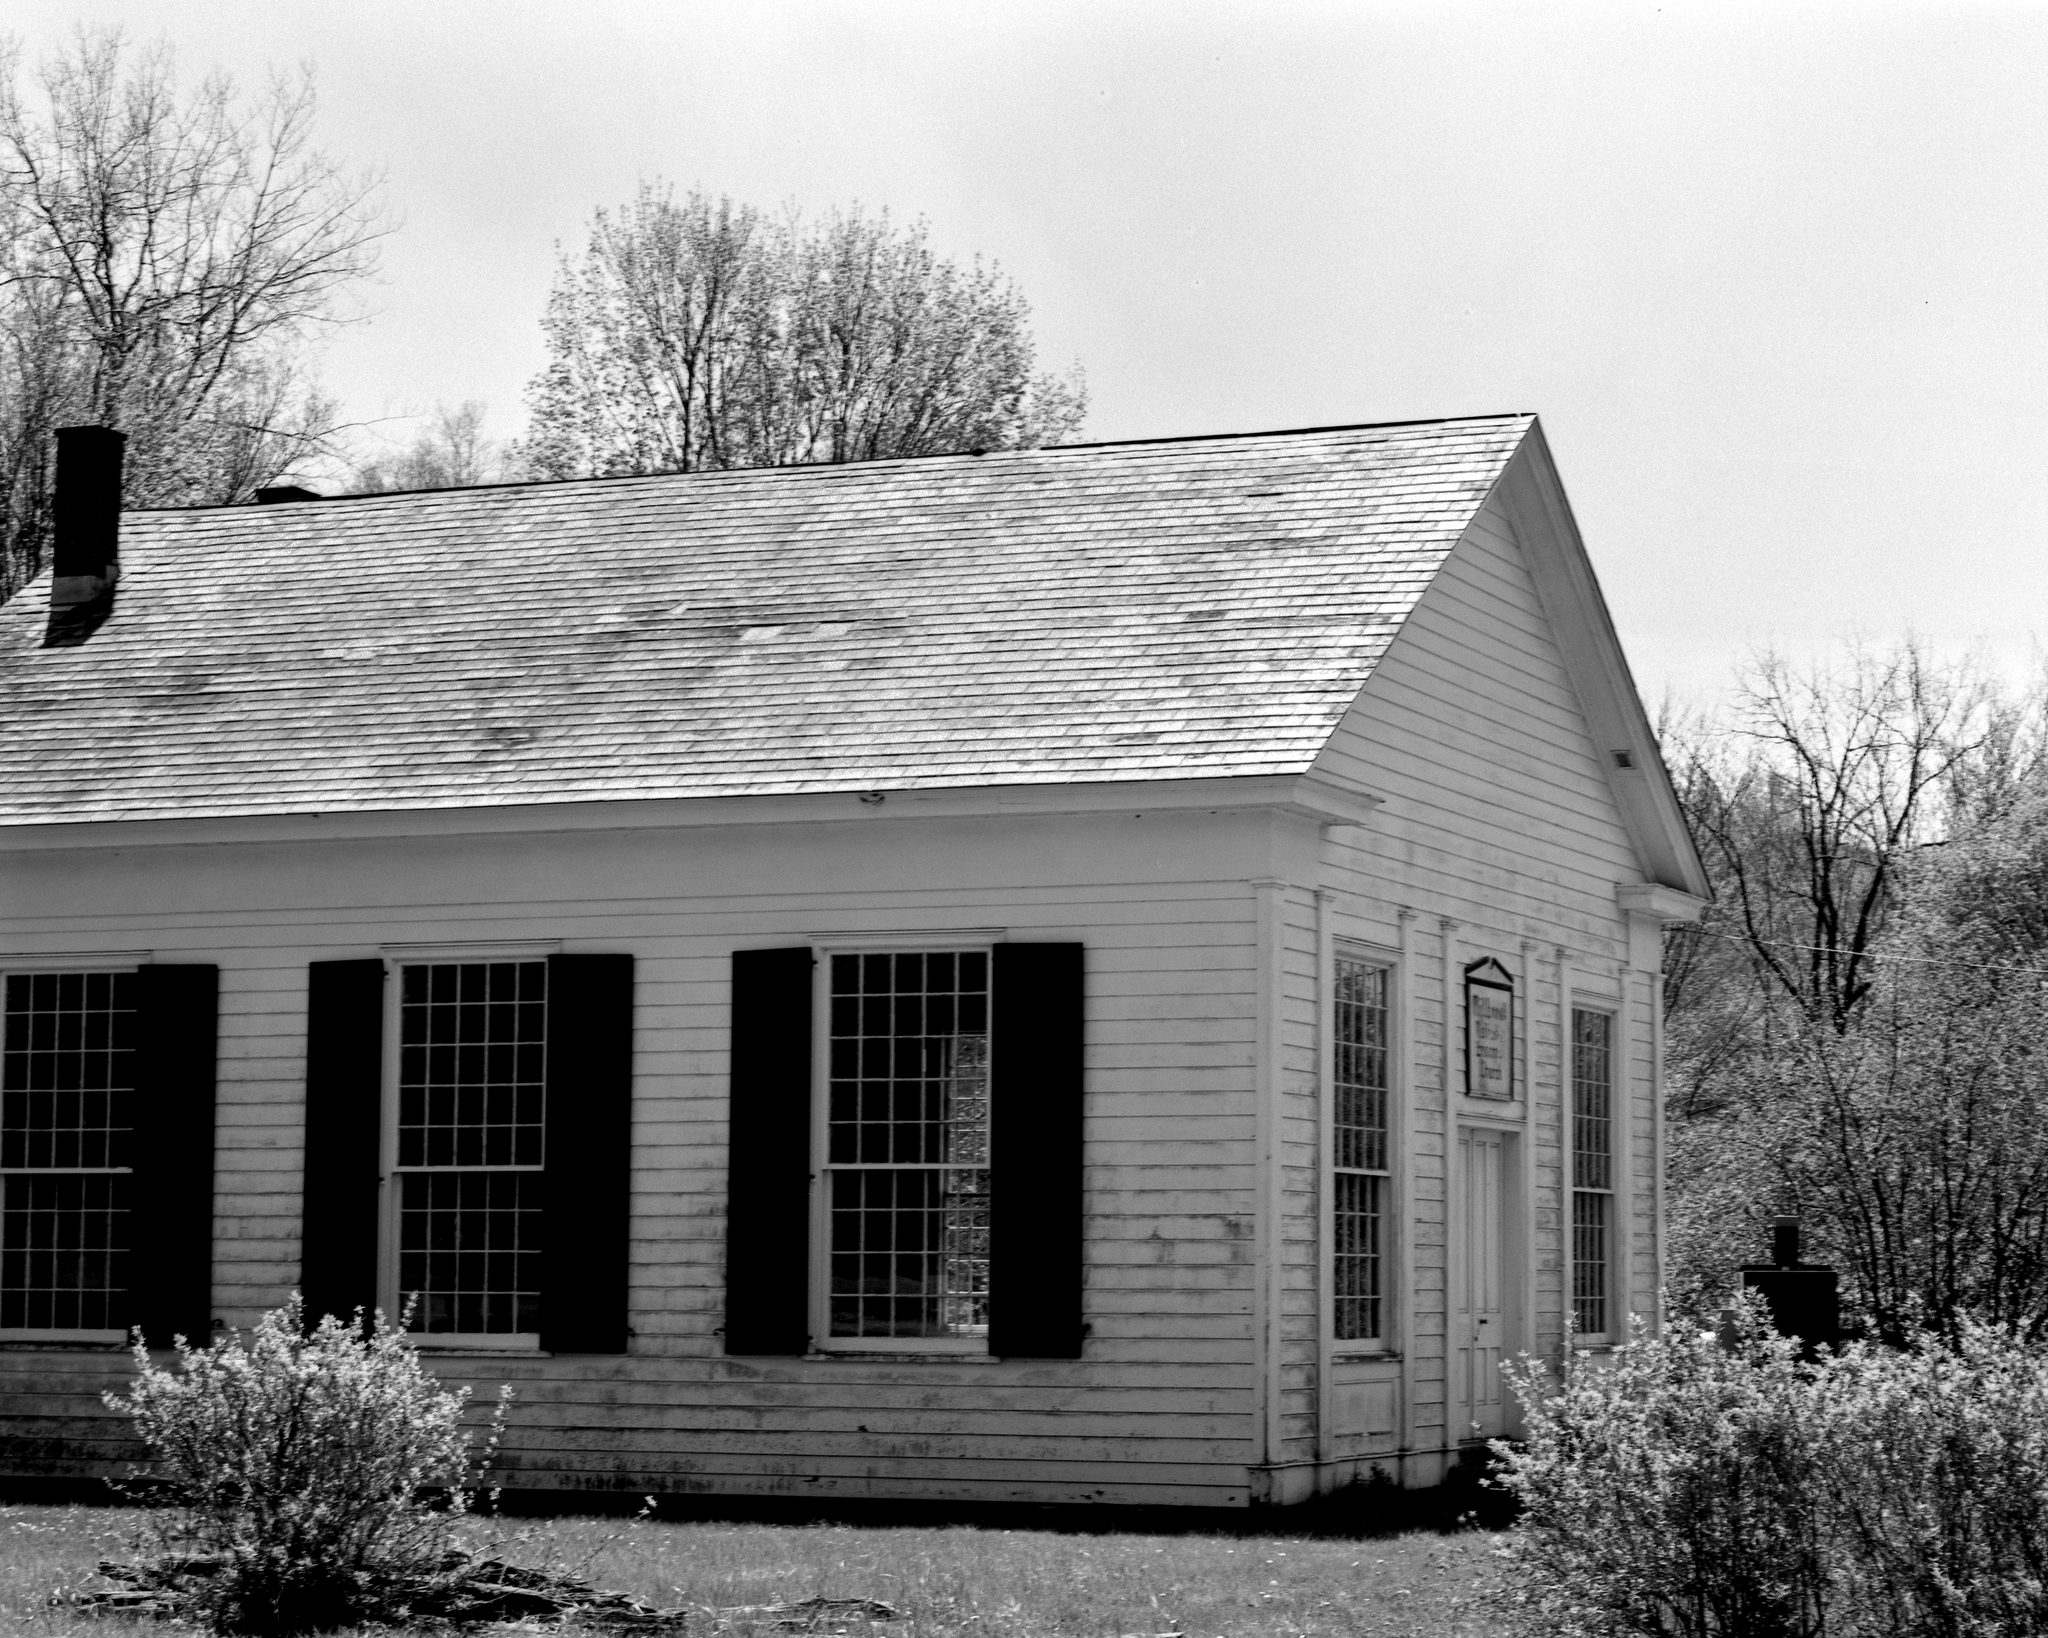 4x5_for_365_project_0142_Millbrook_church.png